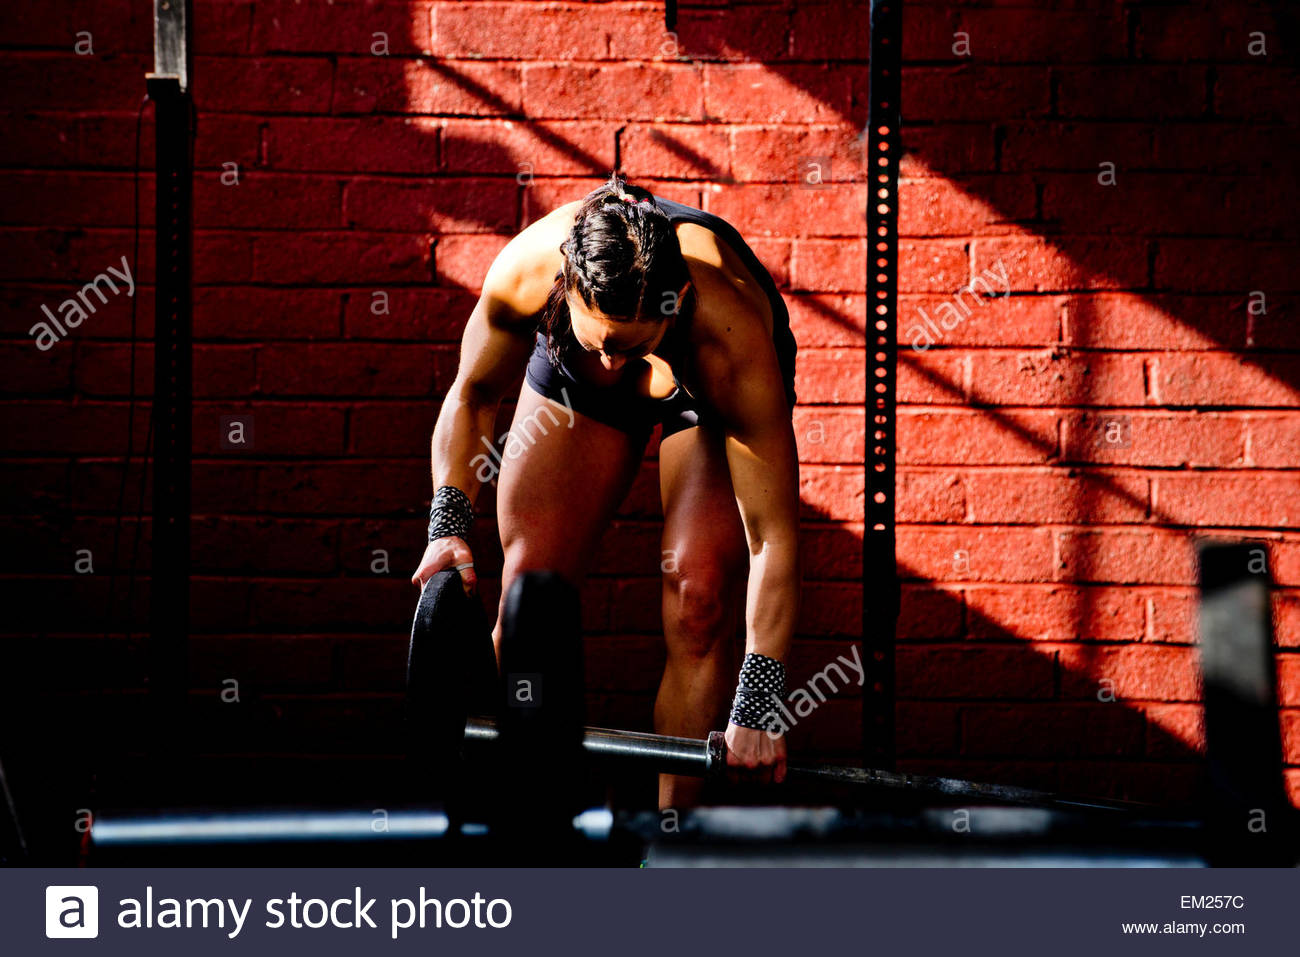 A young man adjusts bumper plate on barbell in San Diego crossfit gym. - Stock Image